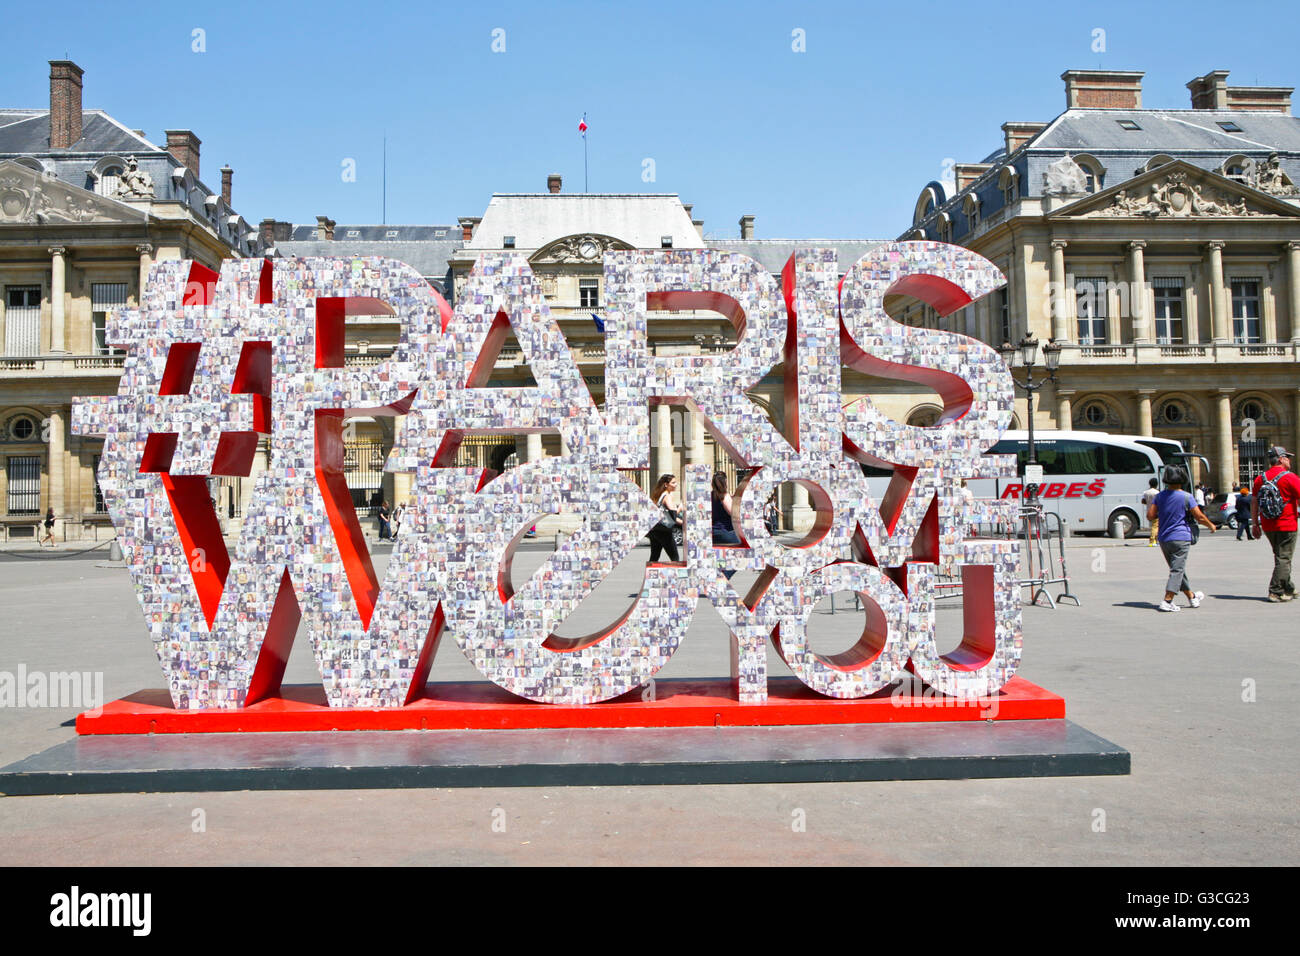 News about #Paris on Twitter